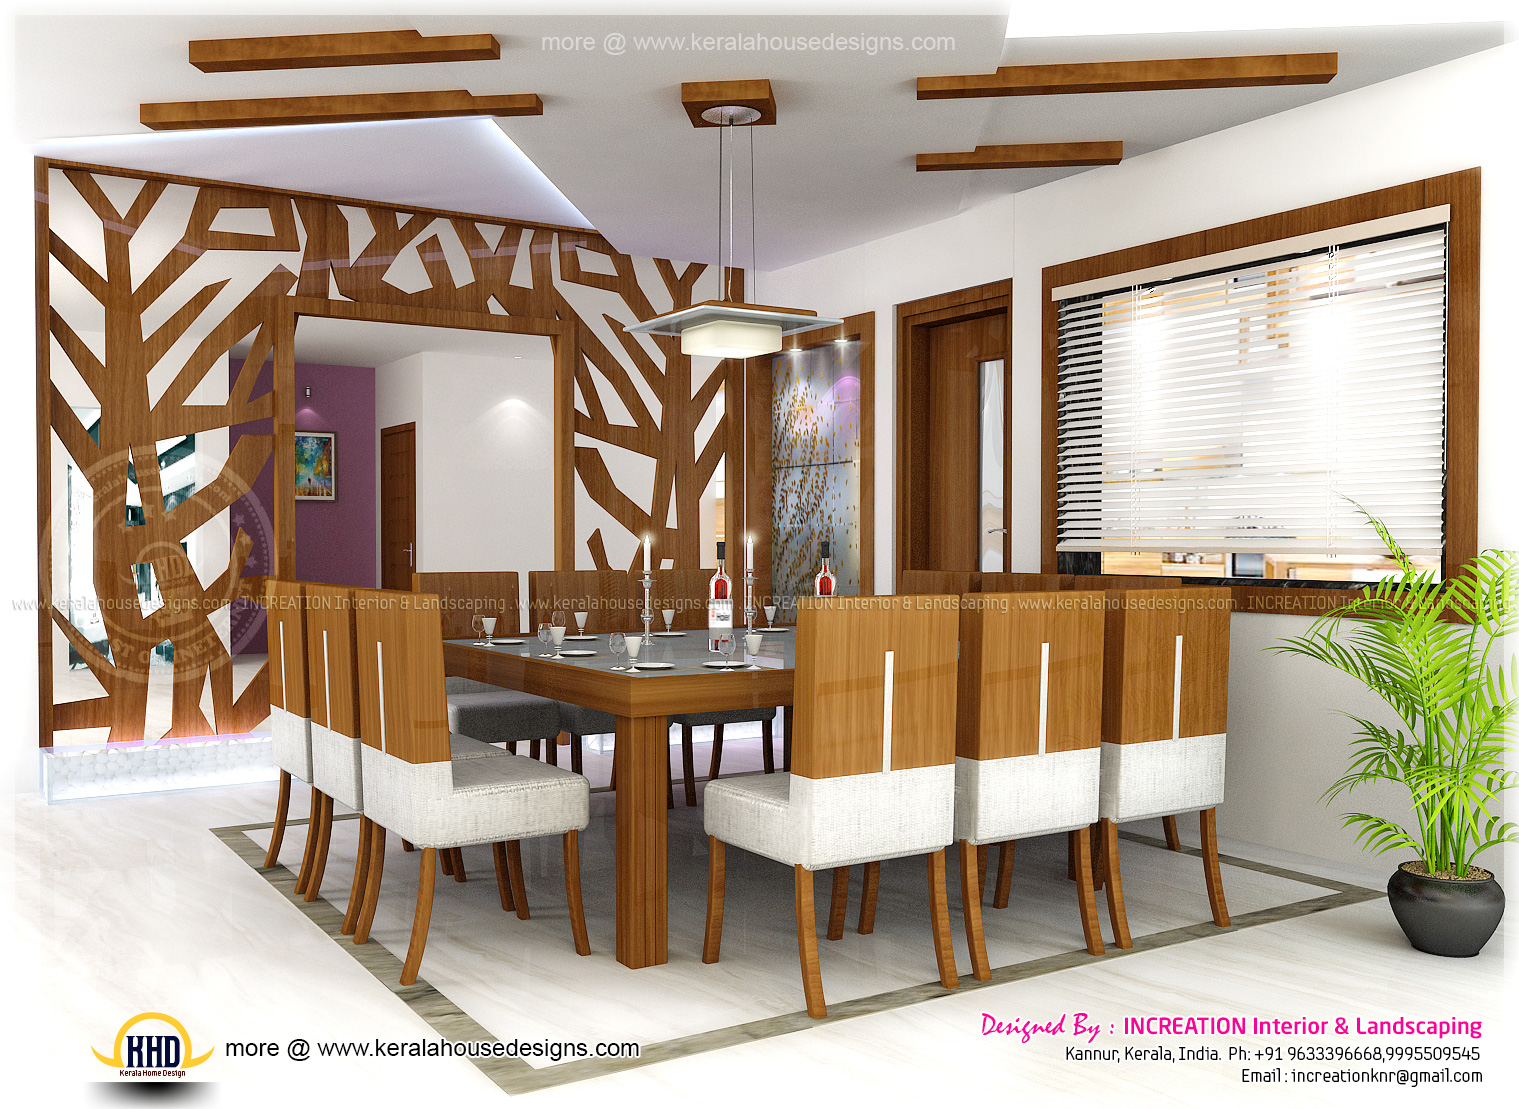 Interior designs from kannur kerala kerala home design for House plans with inside photos